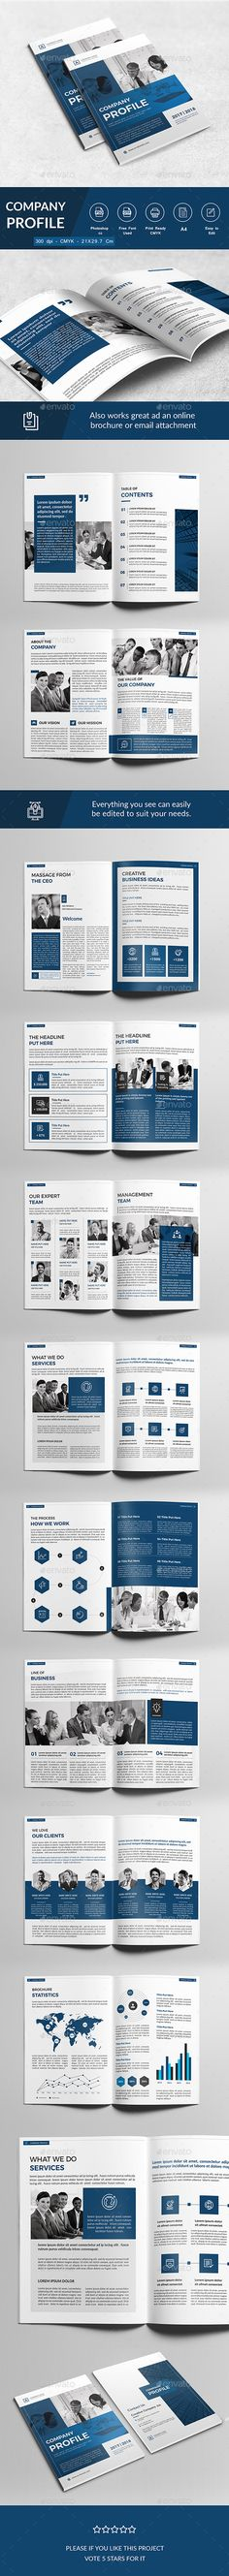 Company Profile Template Vectors Templates Pinterest Company - corporate profile template